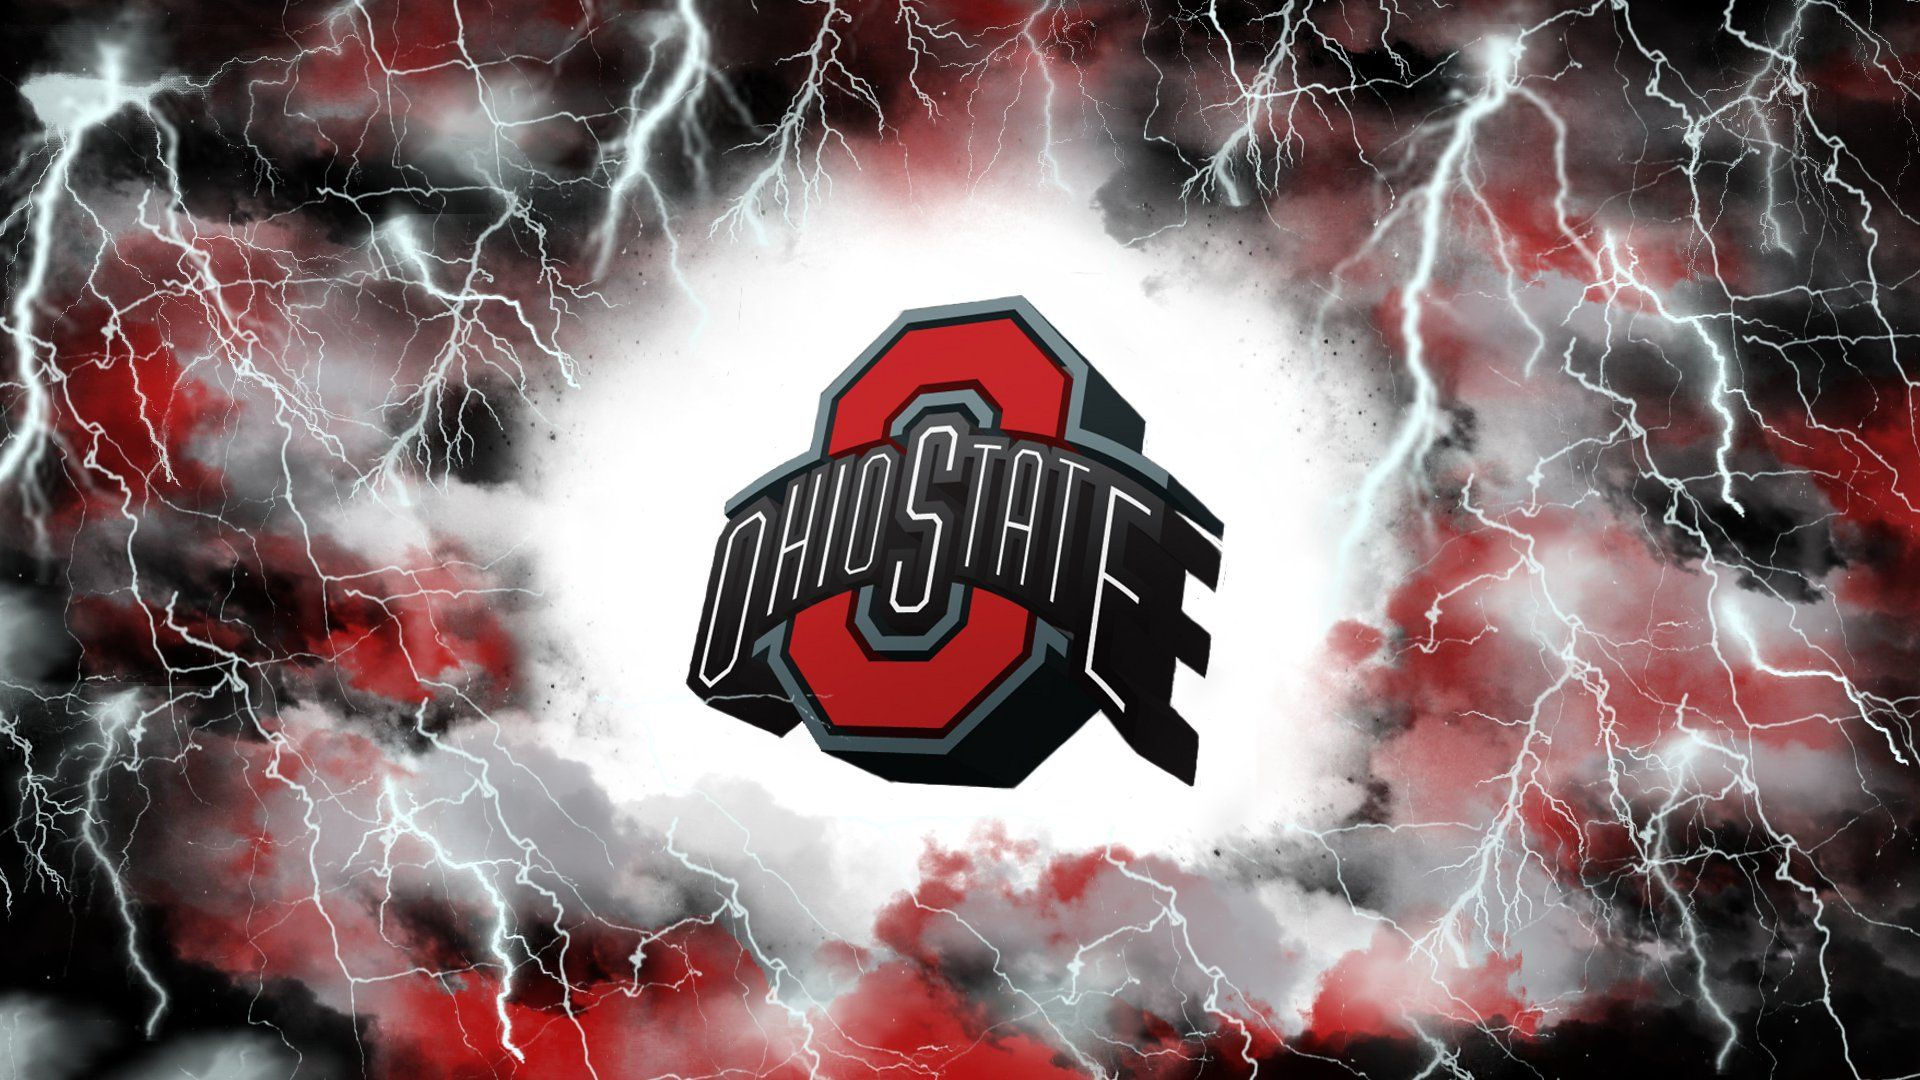 Ohio State Football Ohio State Football Wallpaper Hd High Definition Wallpapers 1080p The Ohio State Buckeyes Ohio State Football Ohio State Wallpa